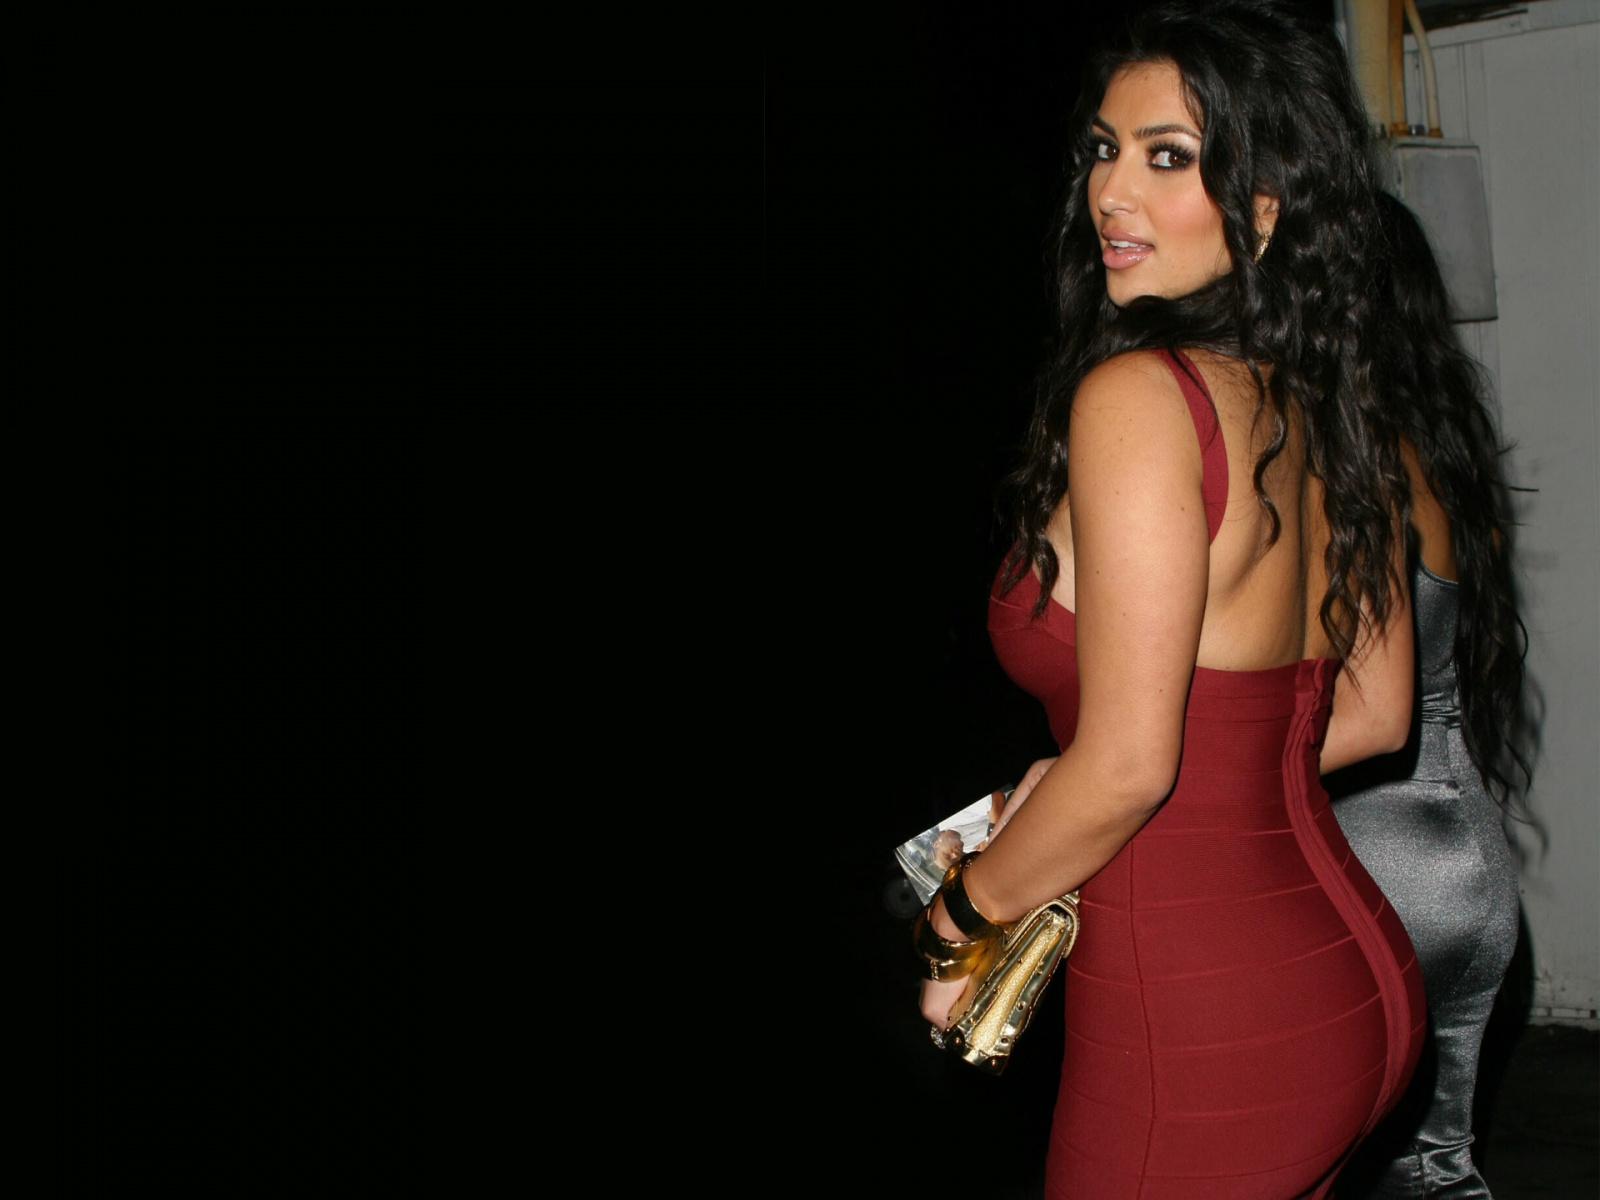 http://4.bp.blogspot.com/-hWG4F-QdAJg/UEjItenAkaI/AAAAAAAAOyo/VbUezim6iYA/s1600/The-best-top-desktop-kim-kardashian-wallpapers-kim-kardashian-wallpaper-hd-6.jpg